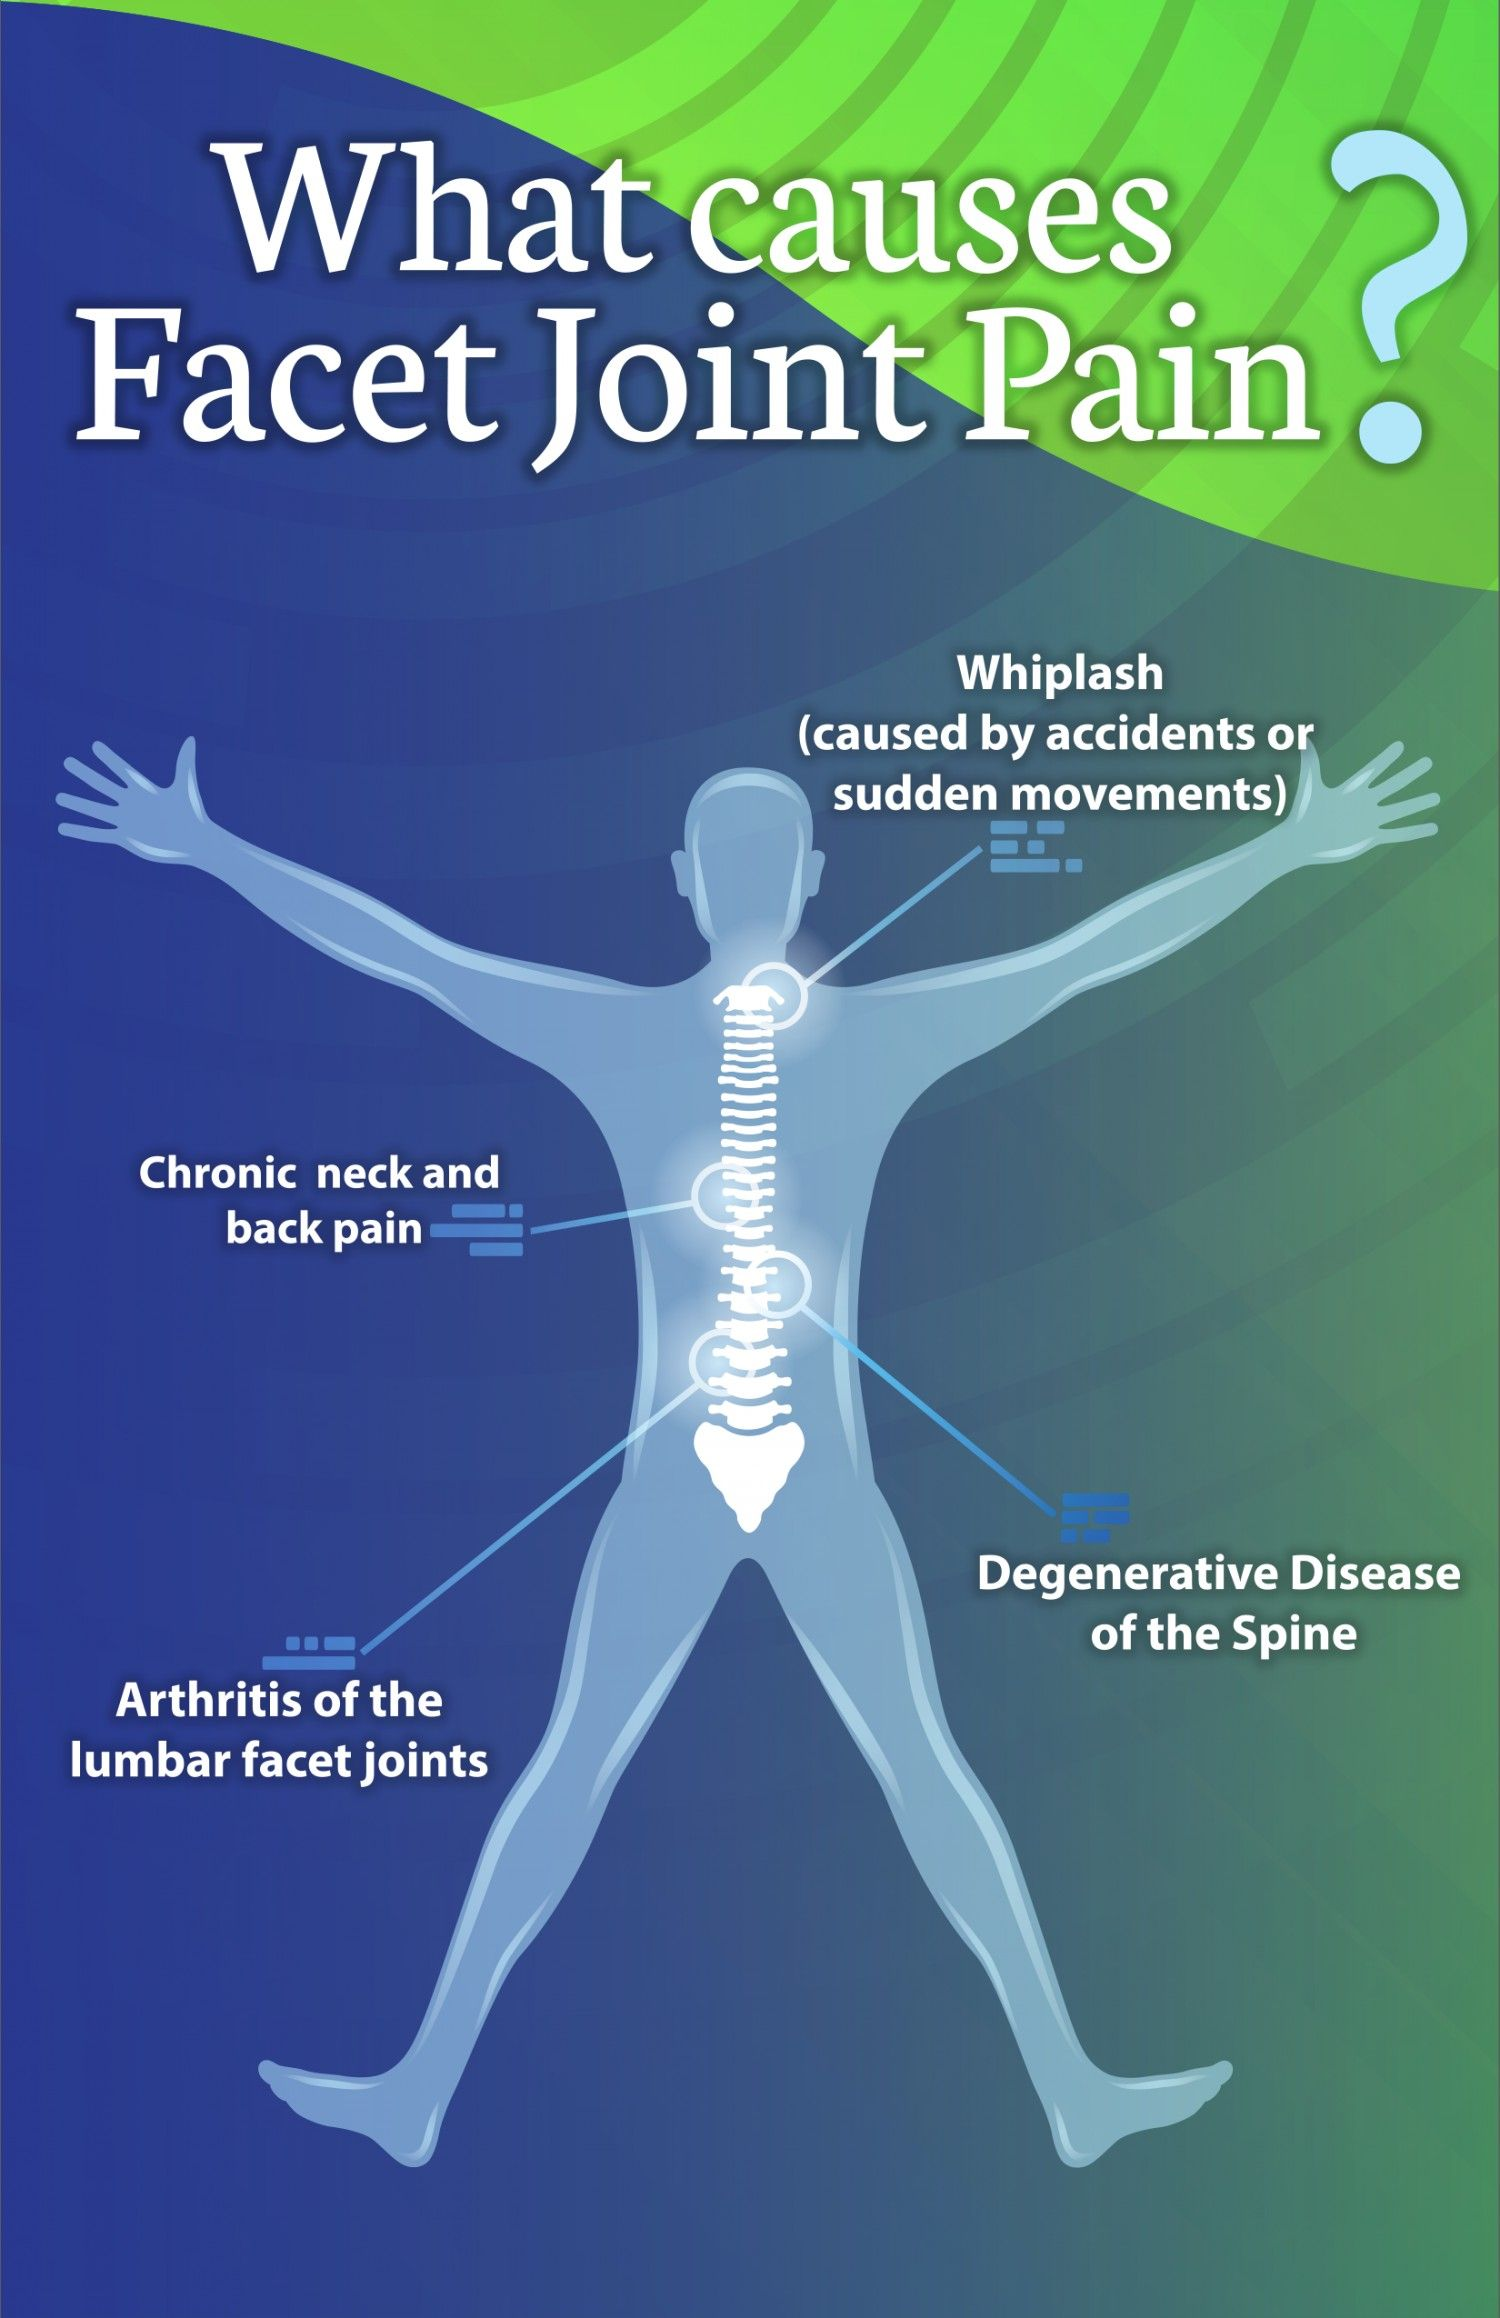 hight resolution of what causes facet joint pain jointpain facetjoint infographic